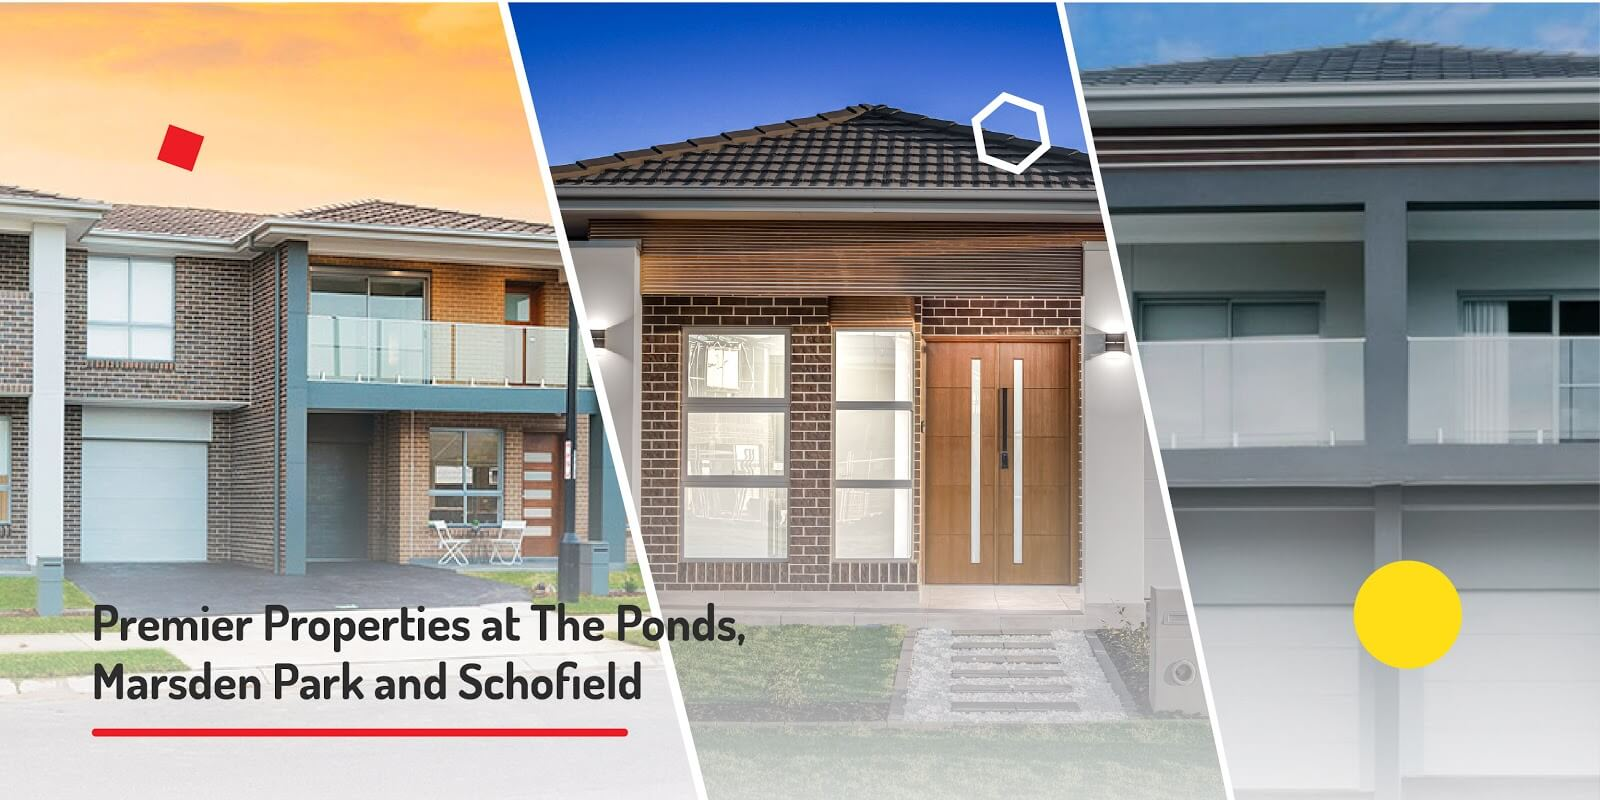 Premier Properties at The Ponds, Marsden Park and Schofields